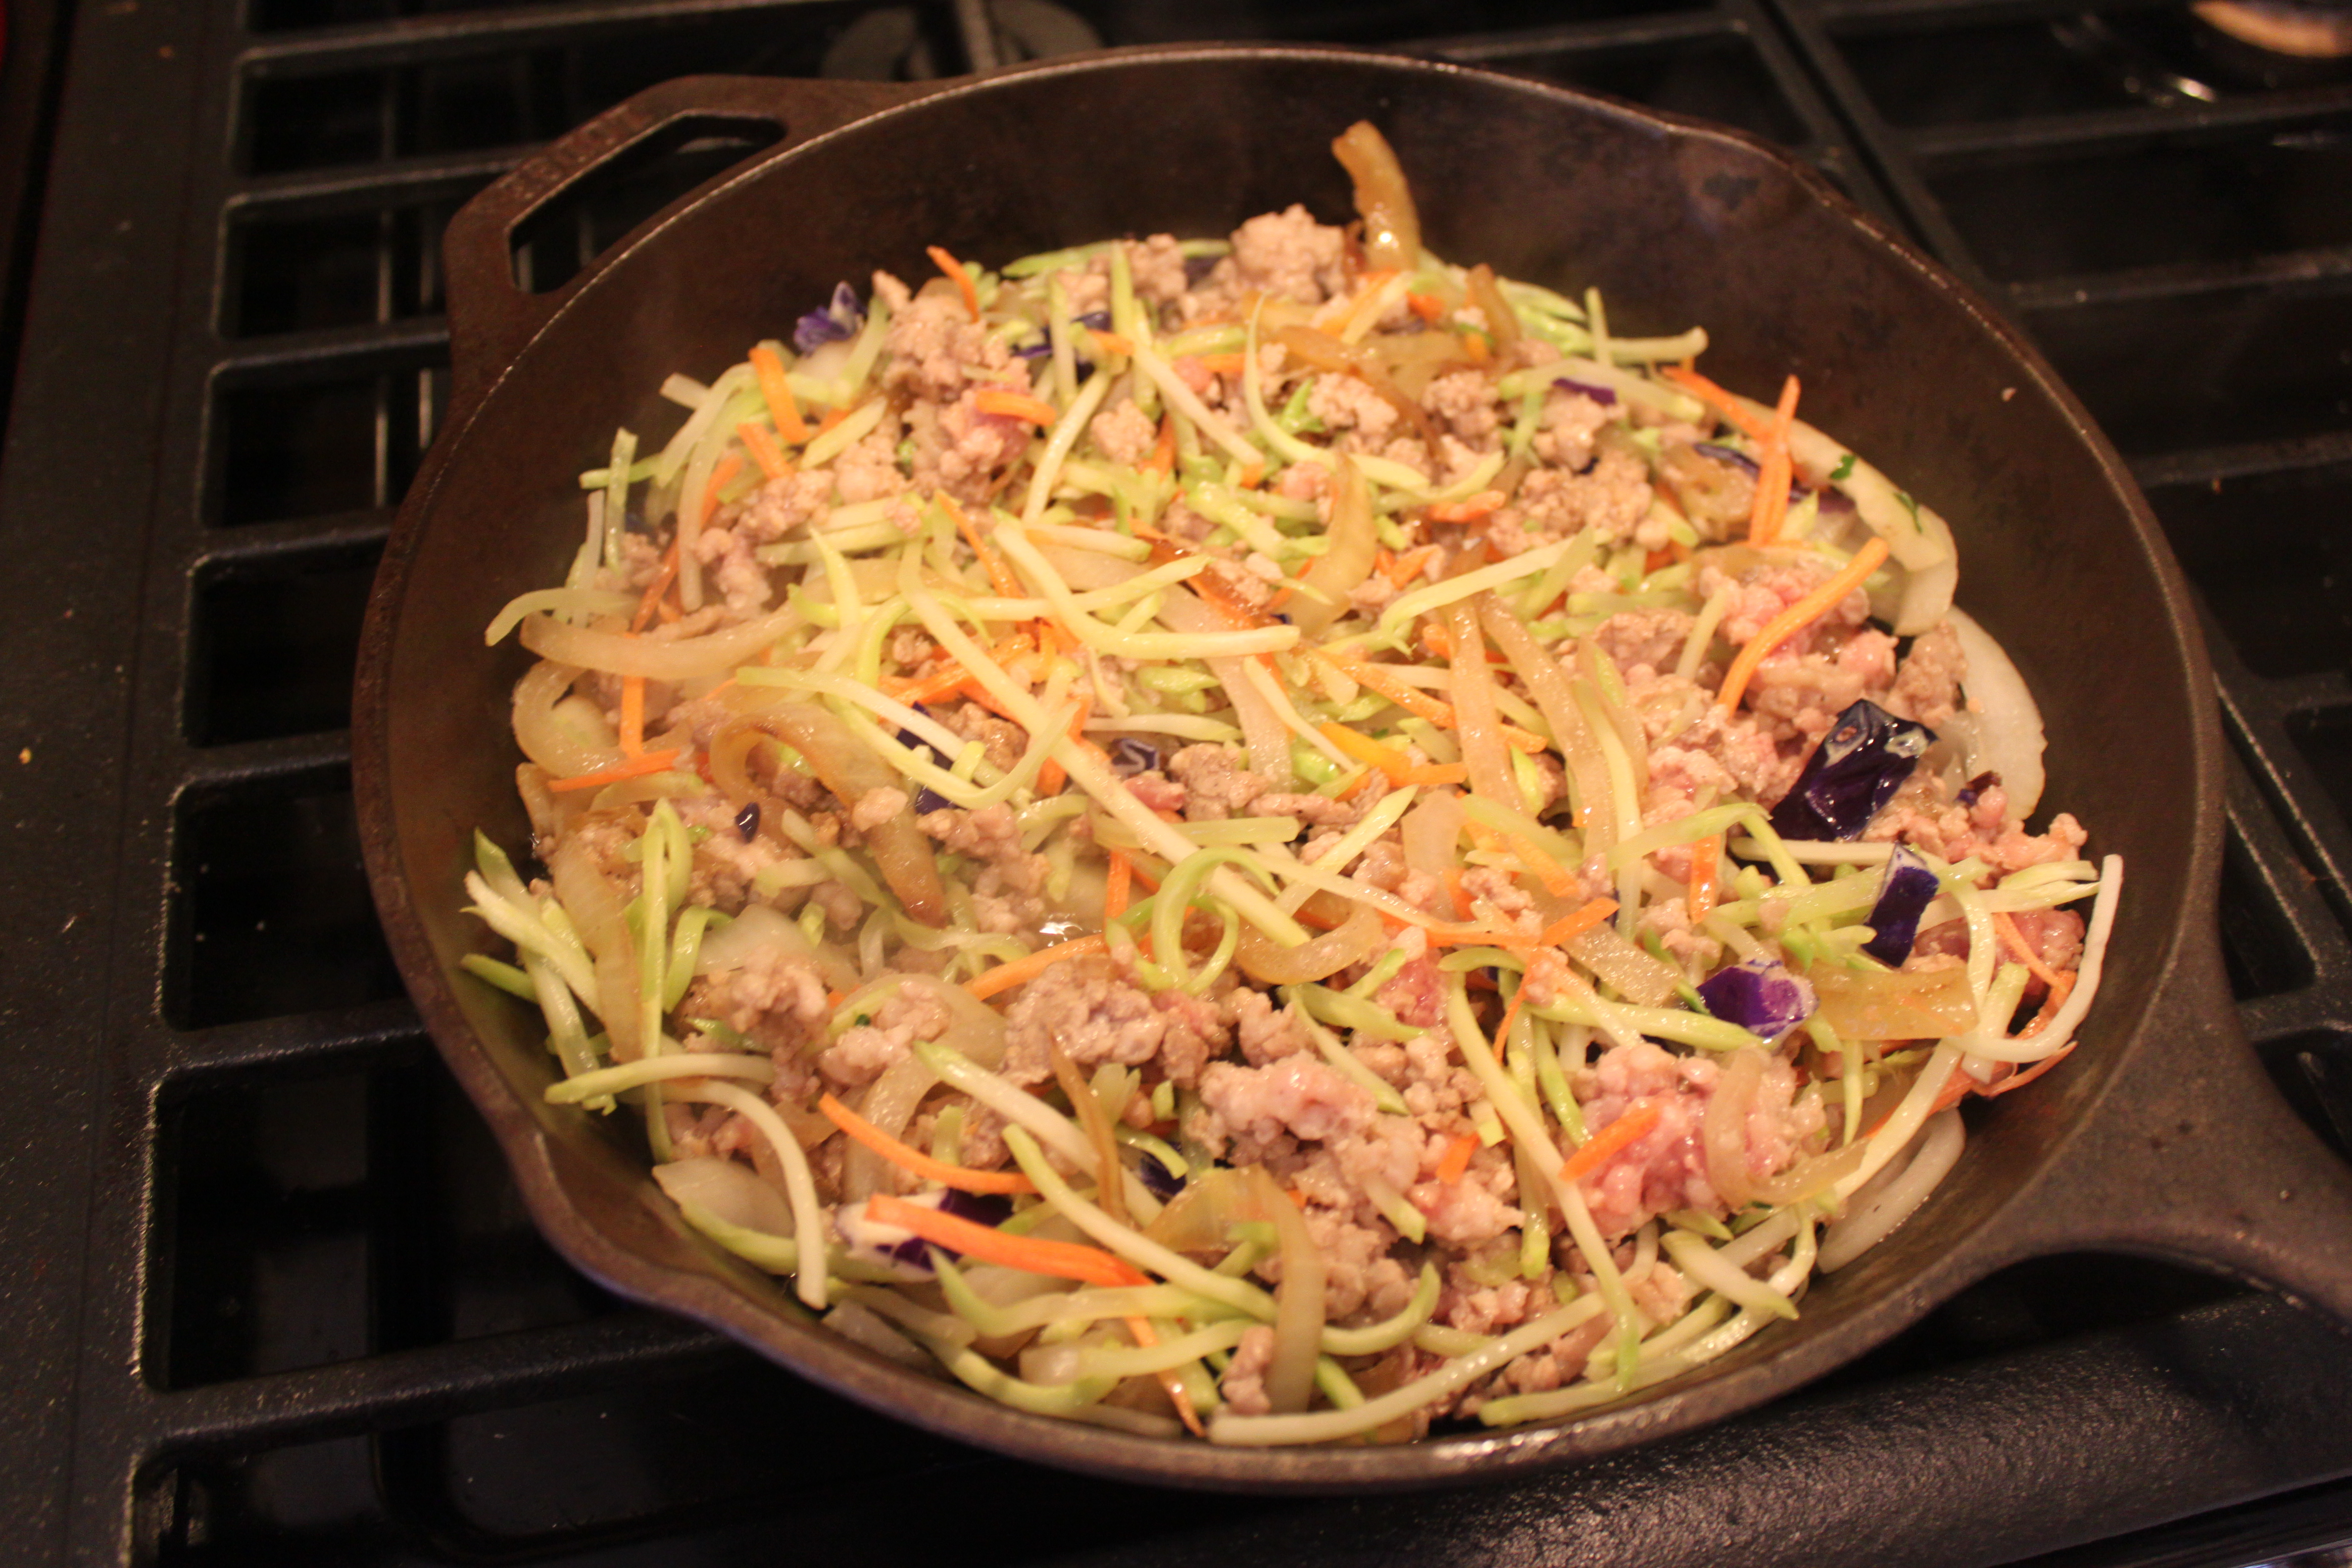 Curried Ground Pork And Broccoli Slaw Frittata Recipe ...